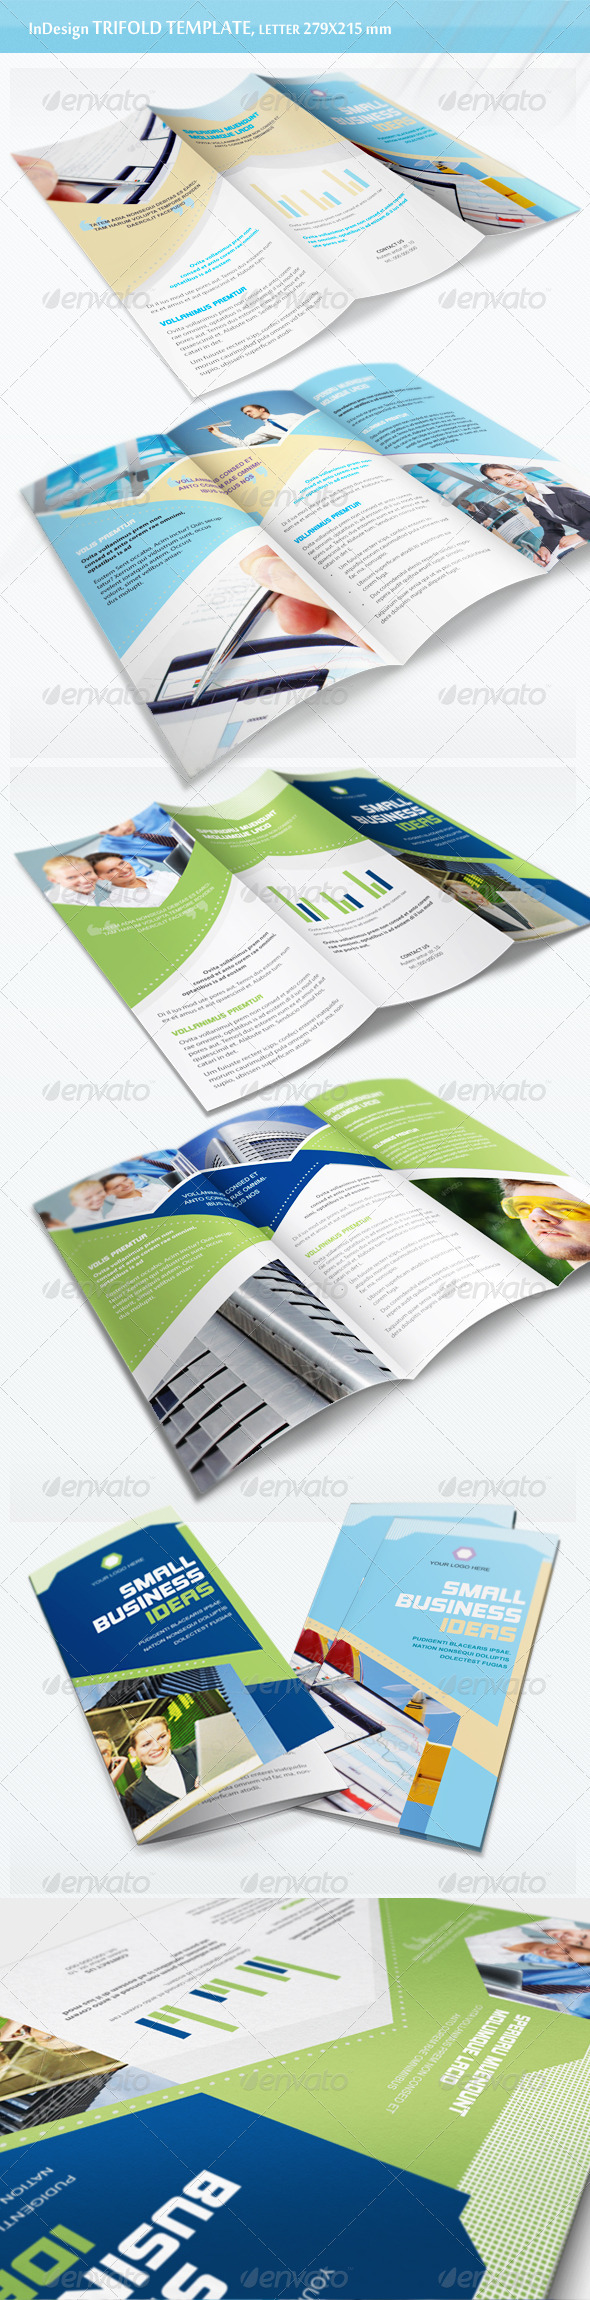 business trifold brochure v7 cleanses absolutely everything and